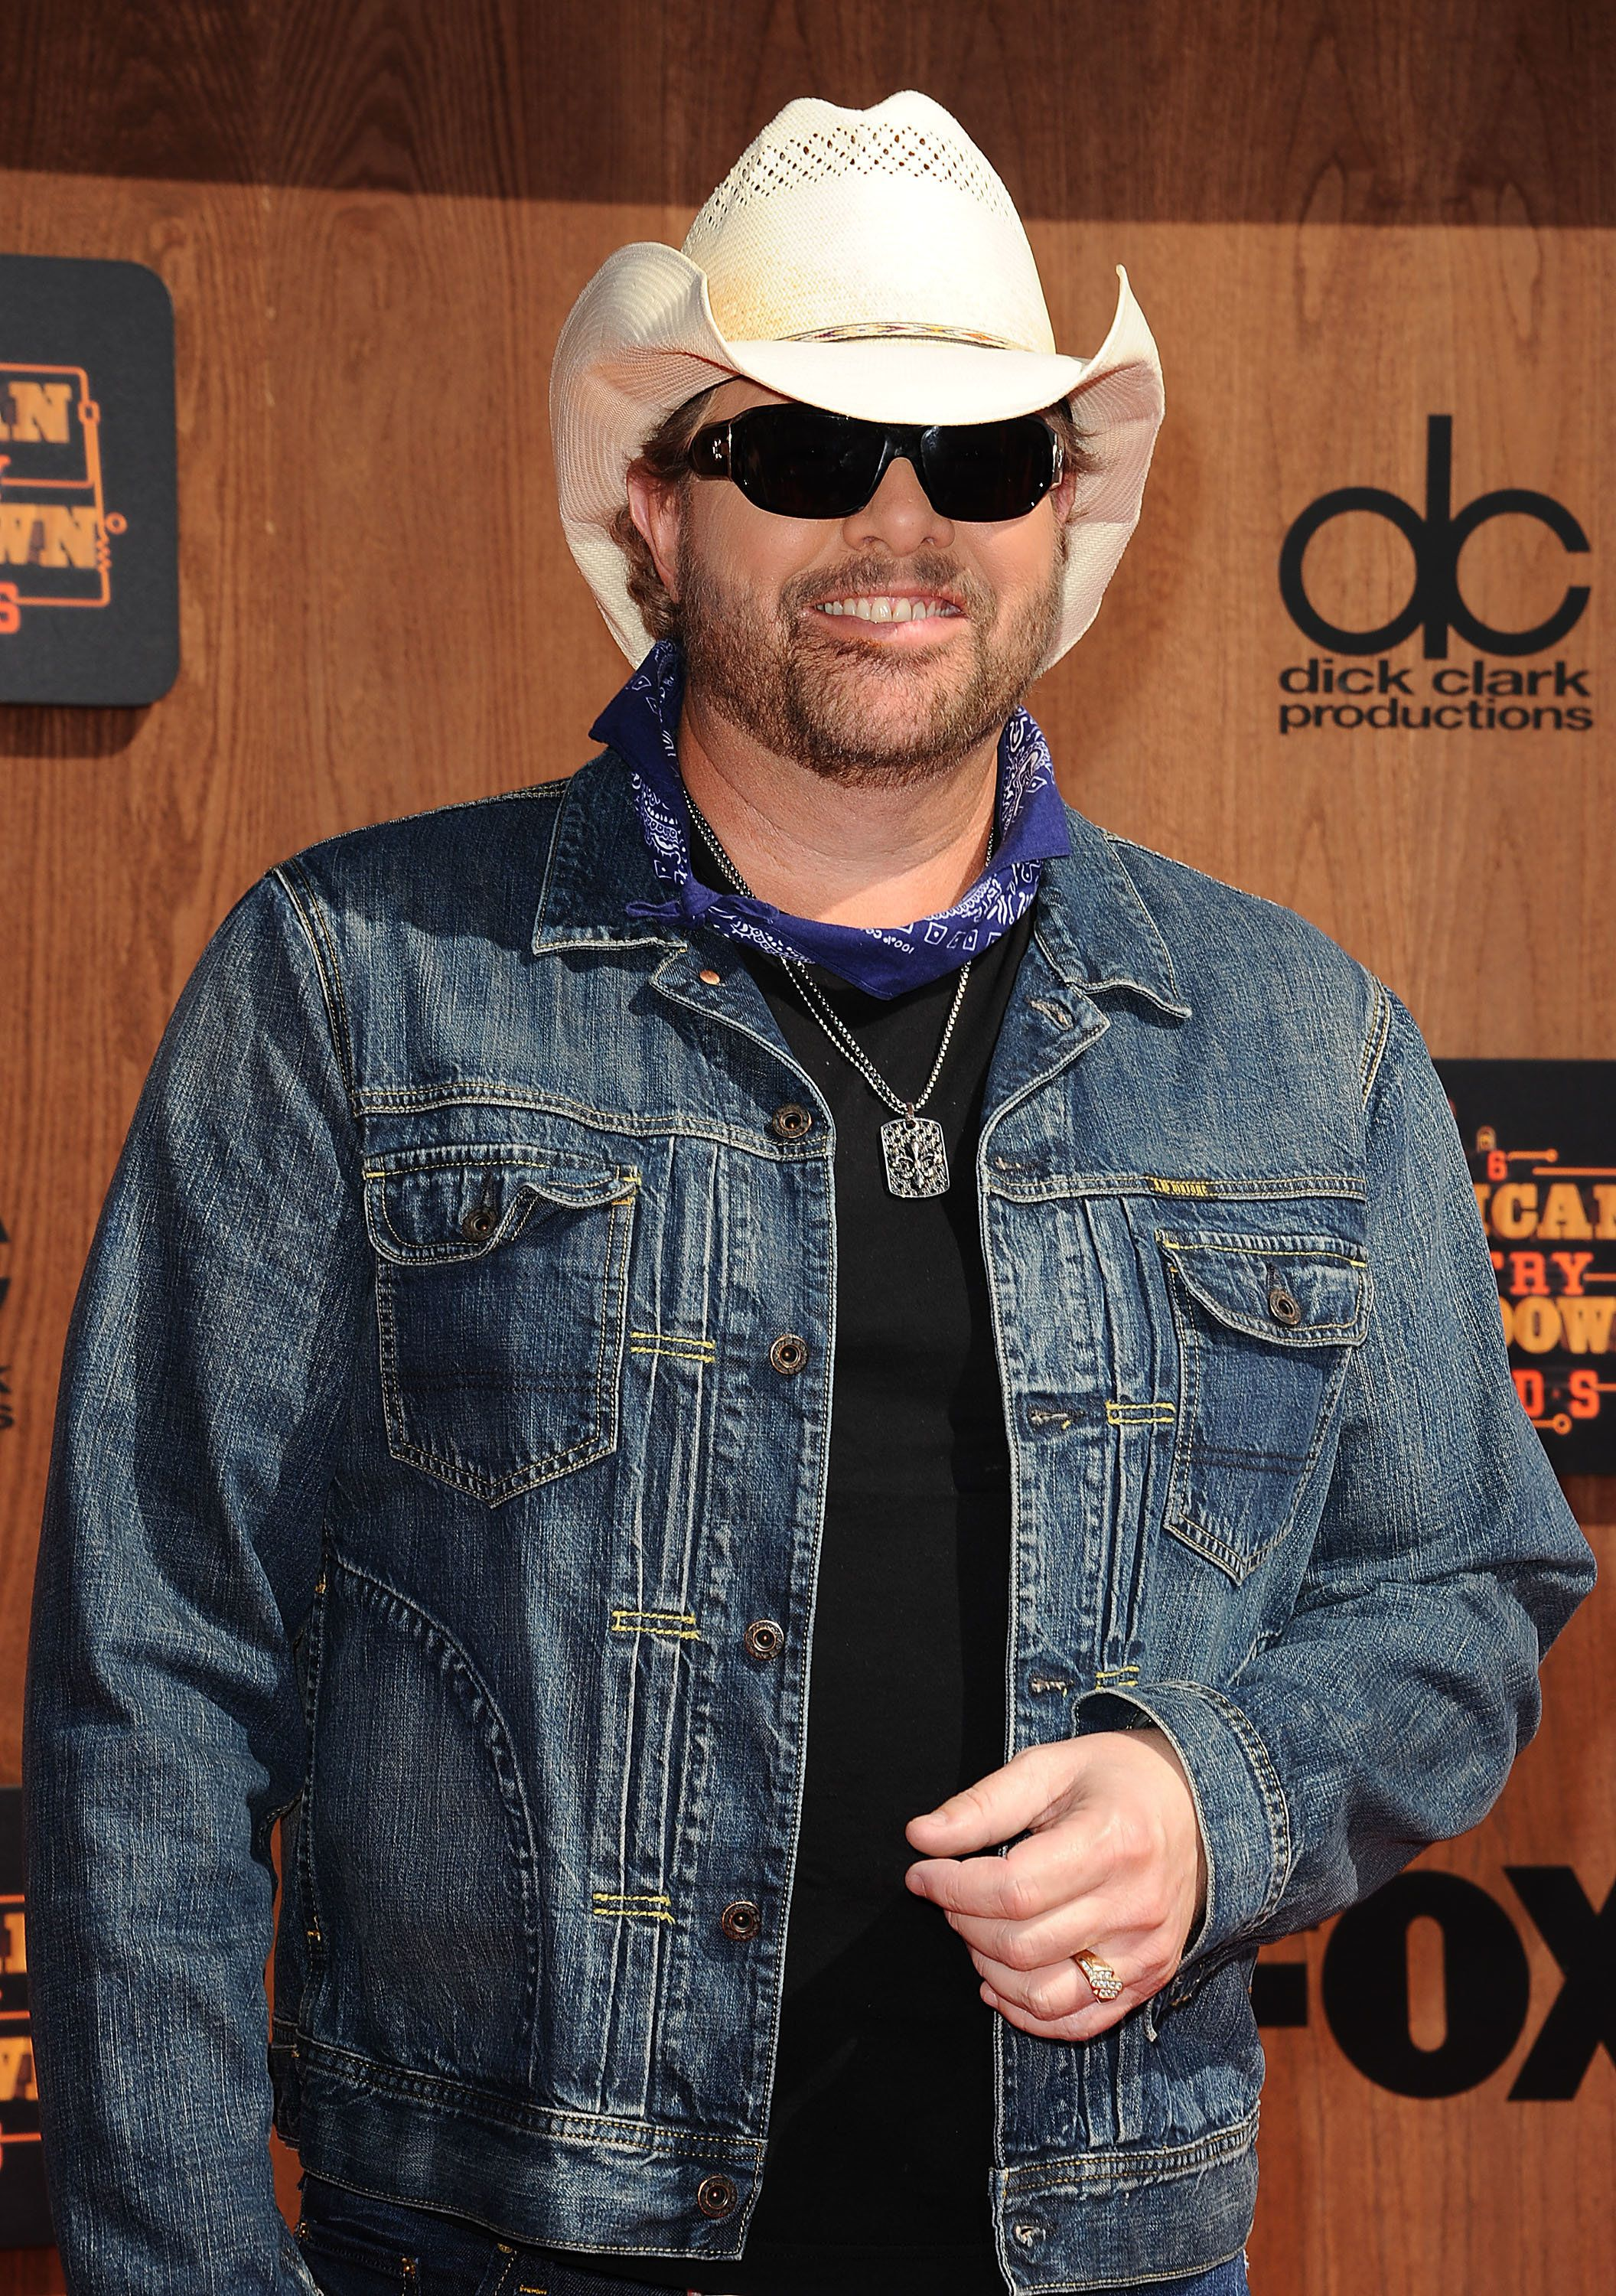 INGLEWOOD, CA - MAY 01:  Singer Toby Keith attends the 2016 American Country Countdown Awards at The Forum on May 01, 2016 in Inglewood, California.  (Photo by Jason LaVeris/FilmMagic)